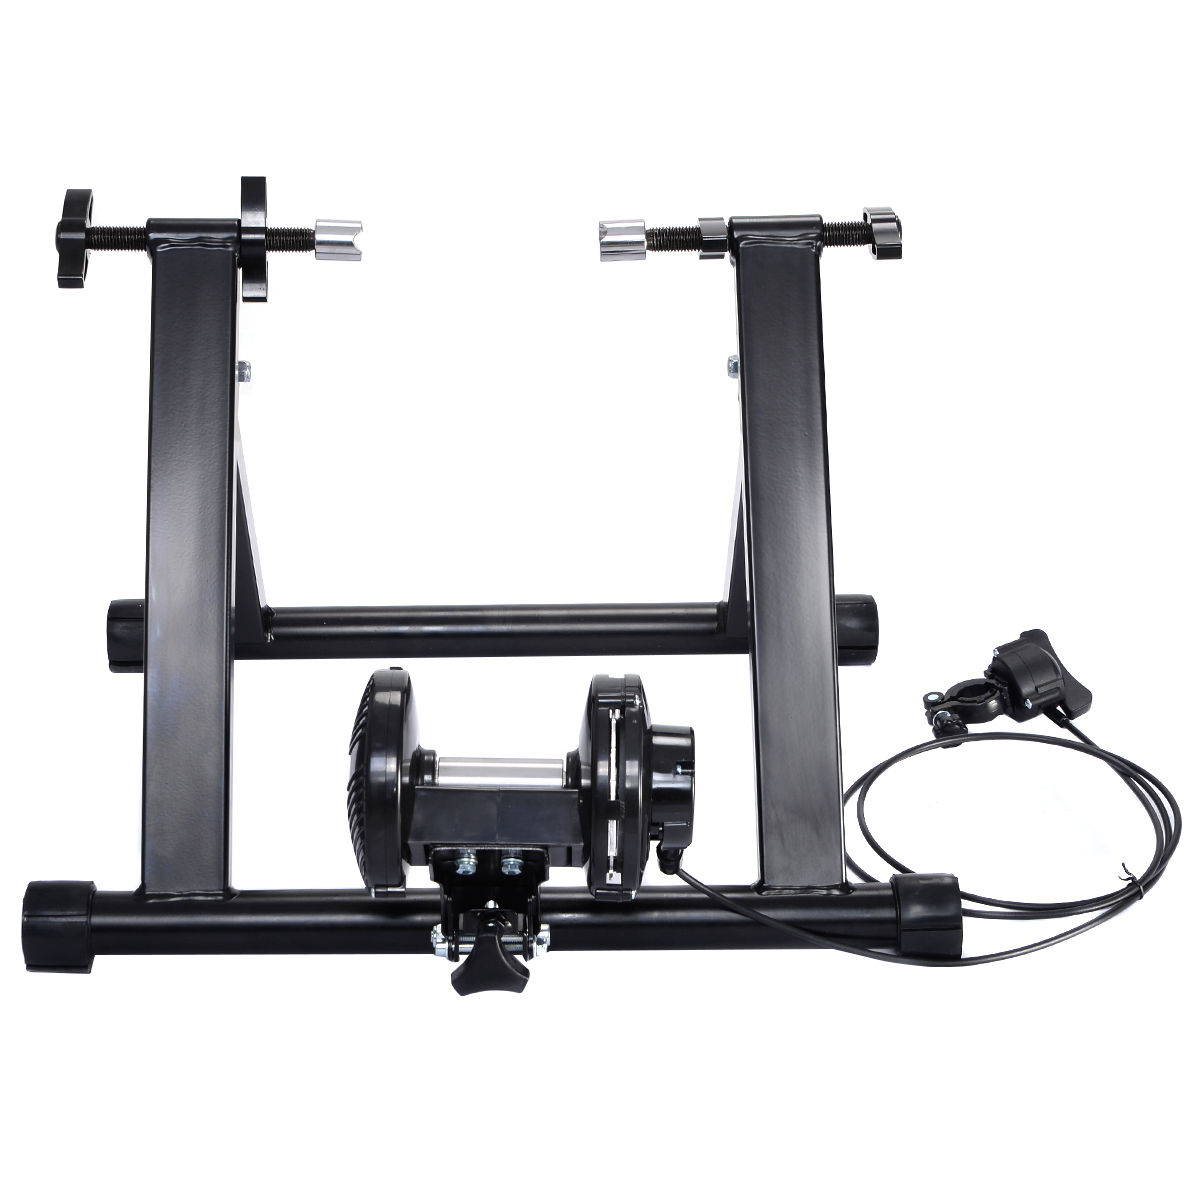 Exercise Bike Portable: Indoor Bike Trainer Portable Exercise Bicycle Magnetic